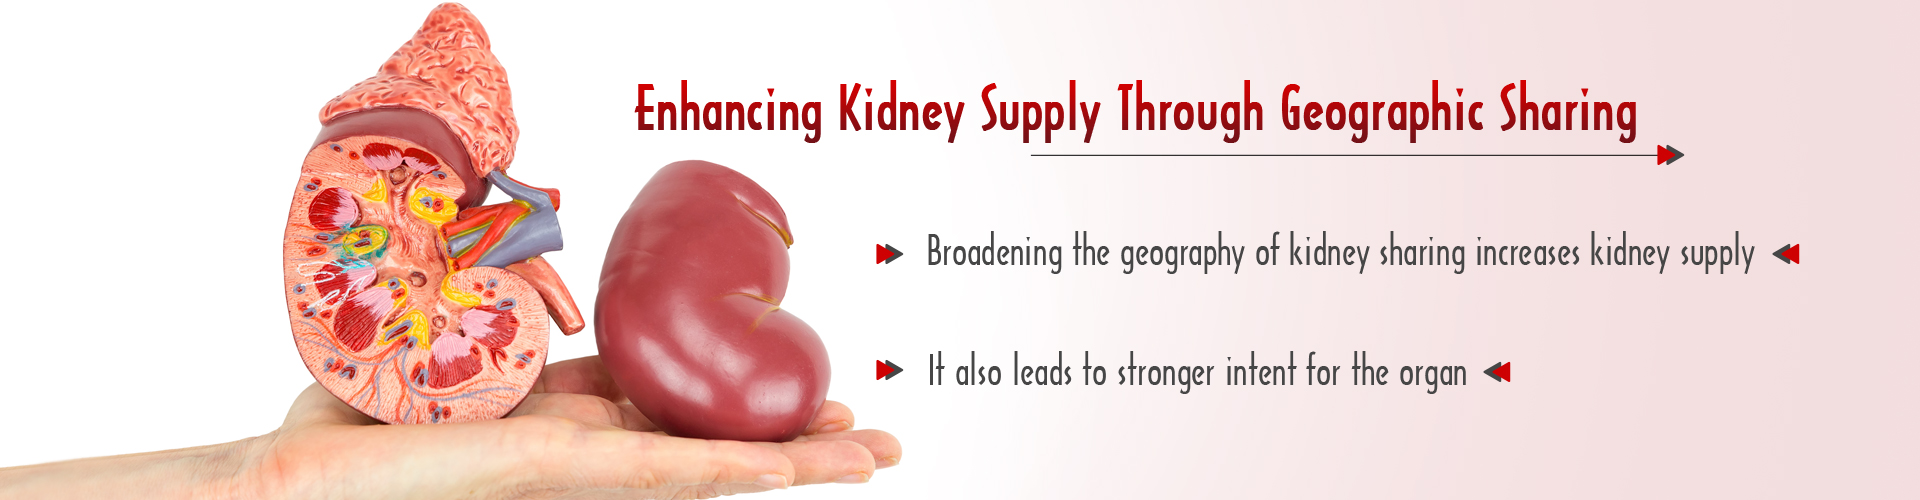 Enhancing Kidney Supply Through Geographic Sharing